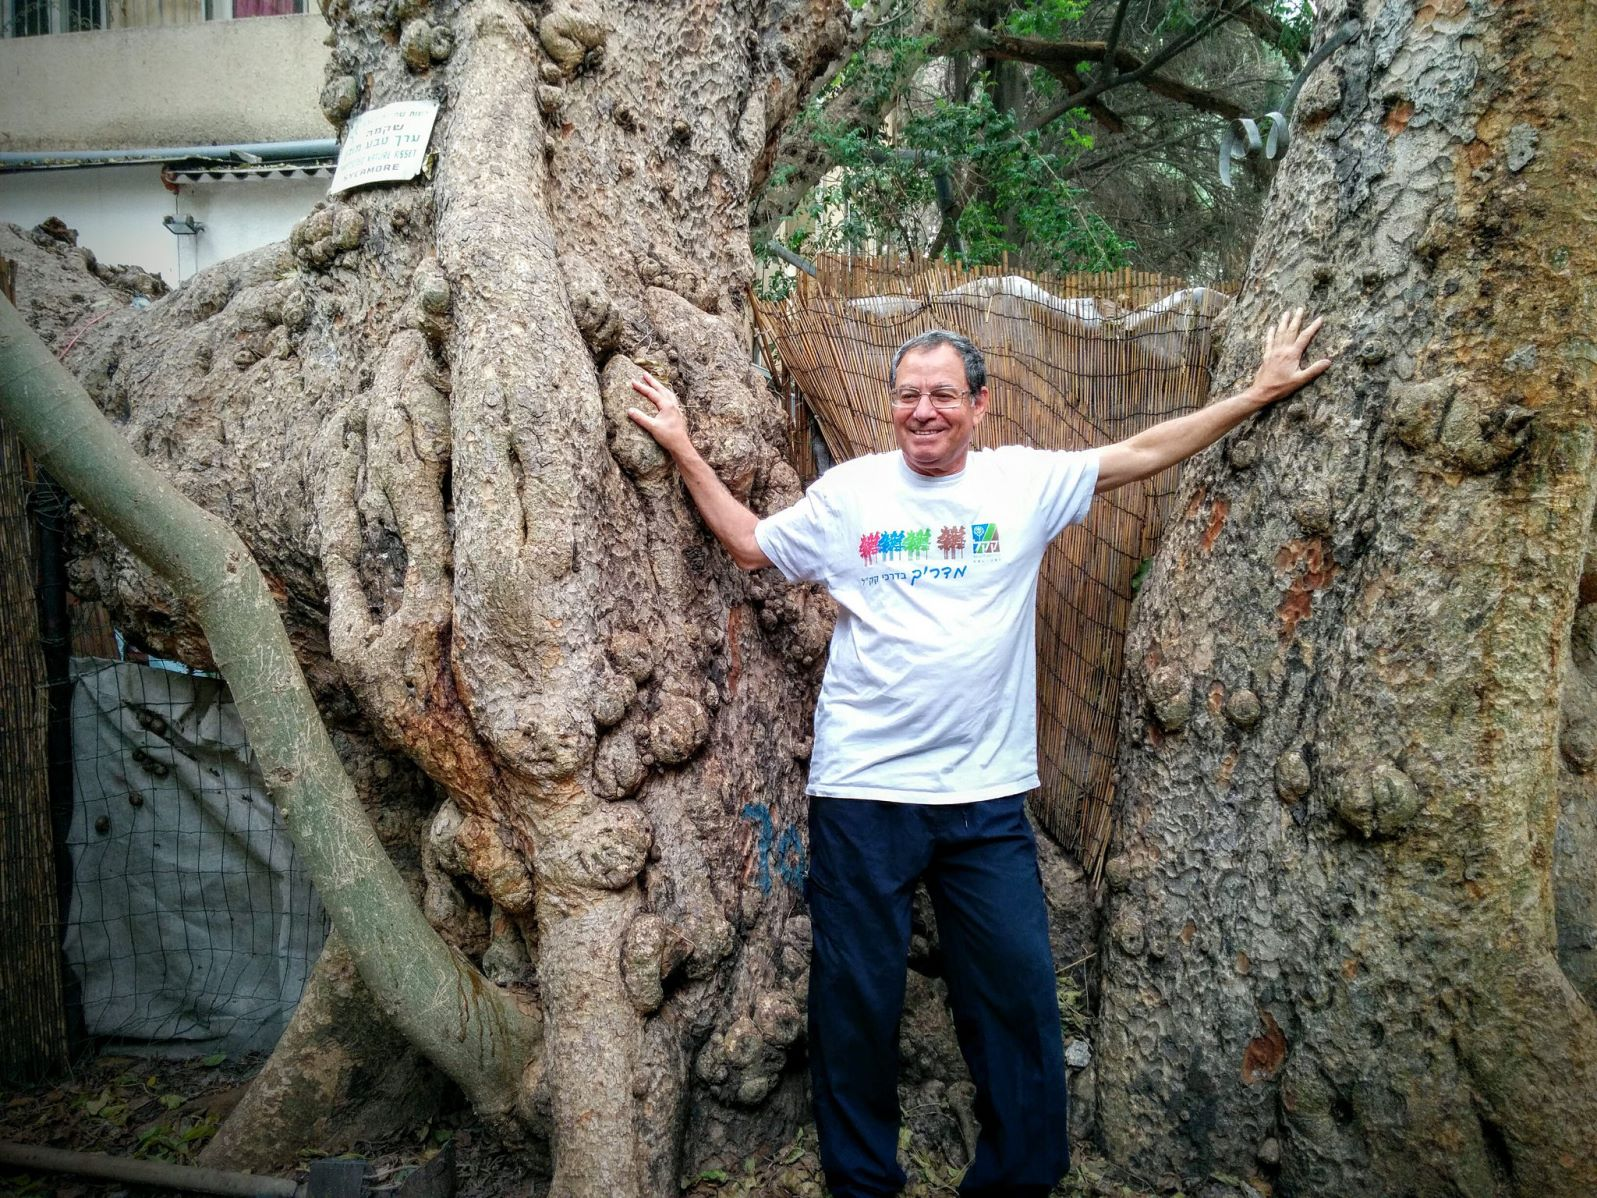 Tree surveyor Yaacov Shkolnik showing the sycamore fig tree that has been in the headlines. Photo by Viva Sarah Press